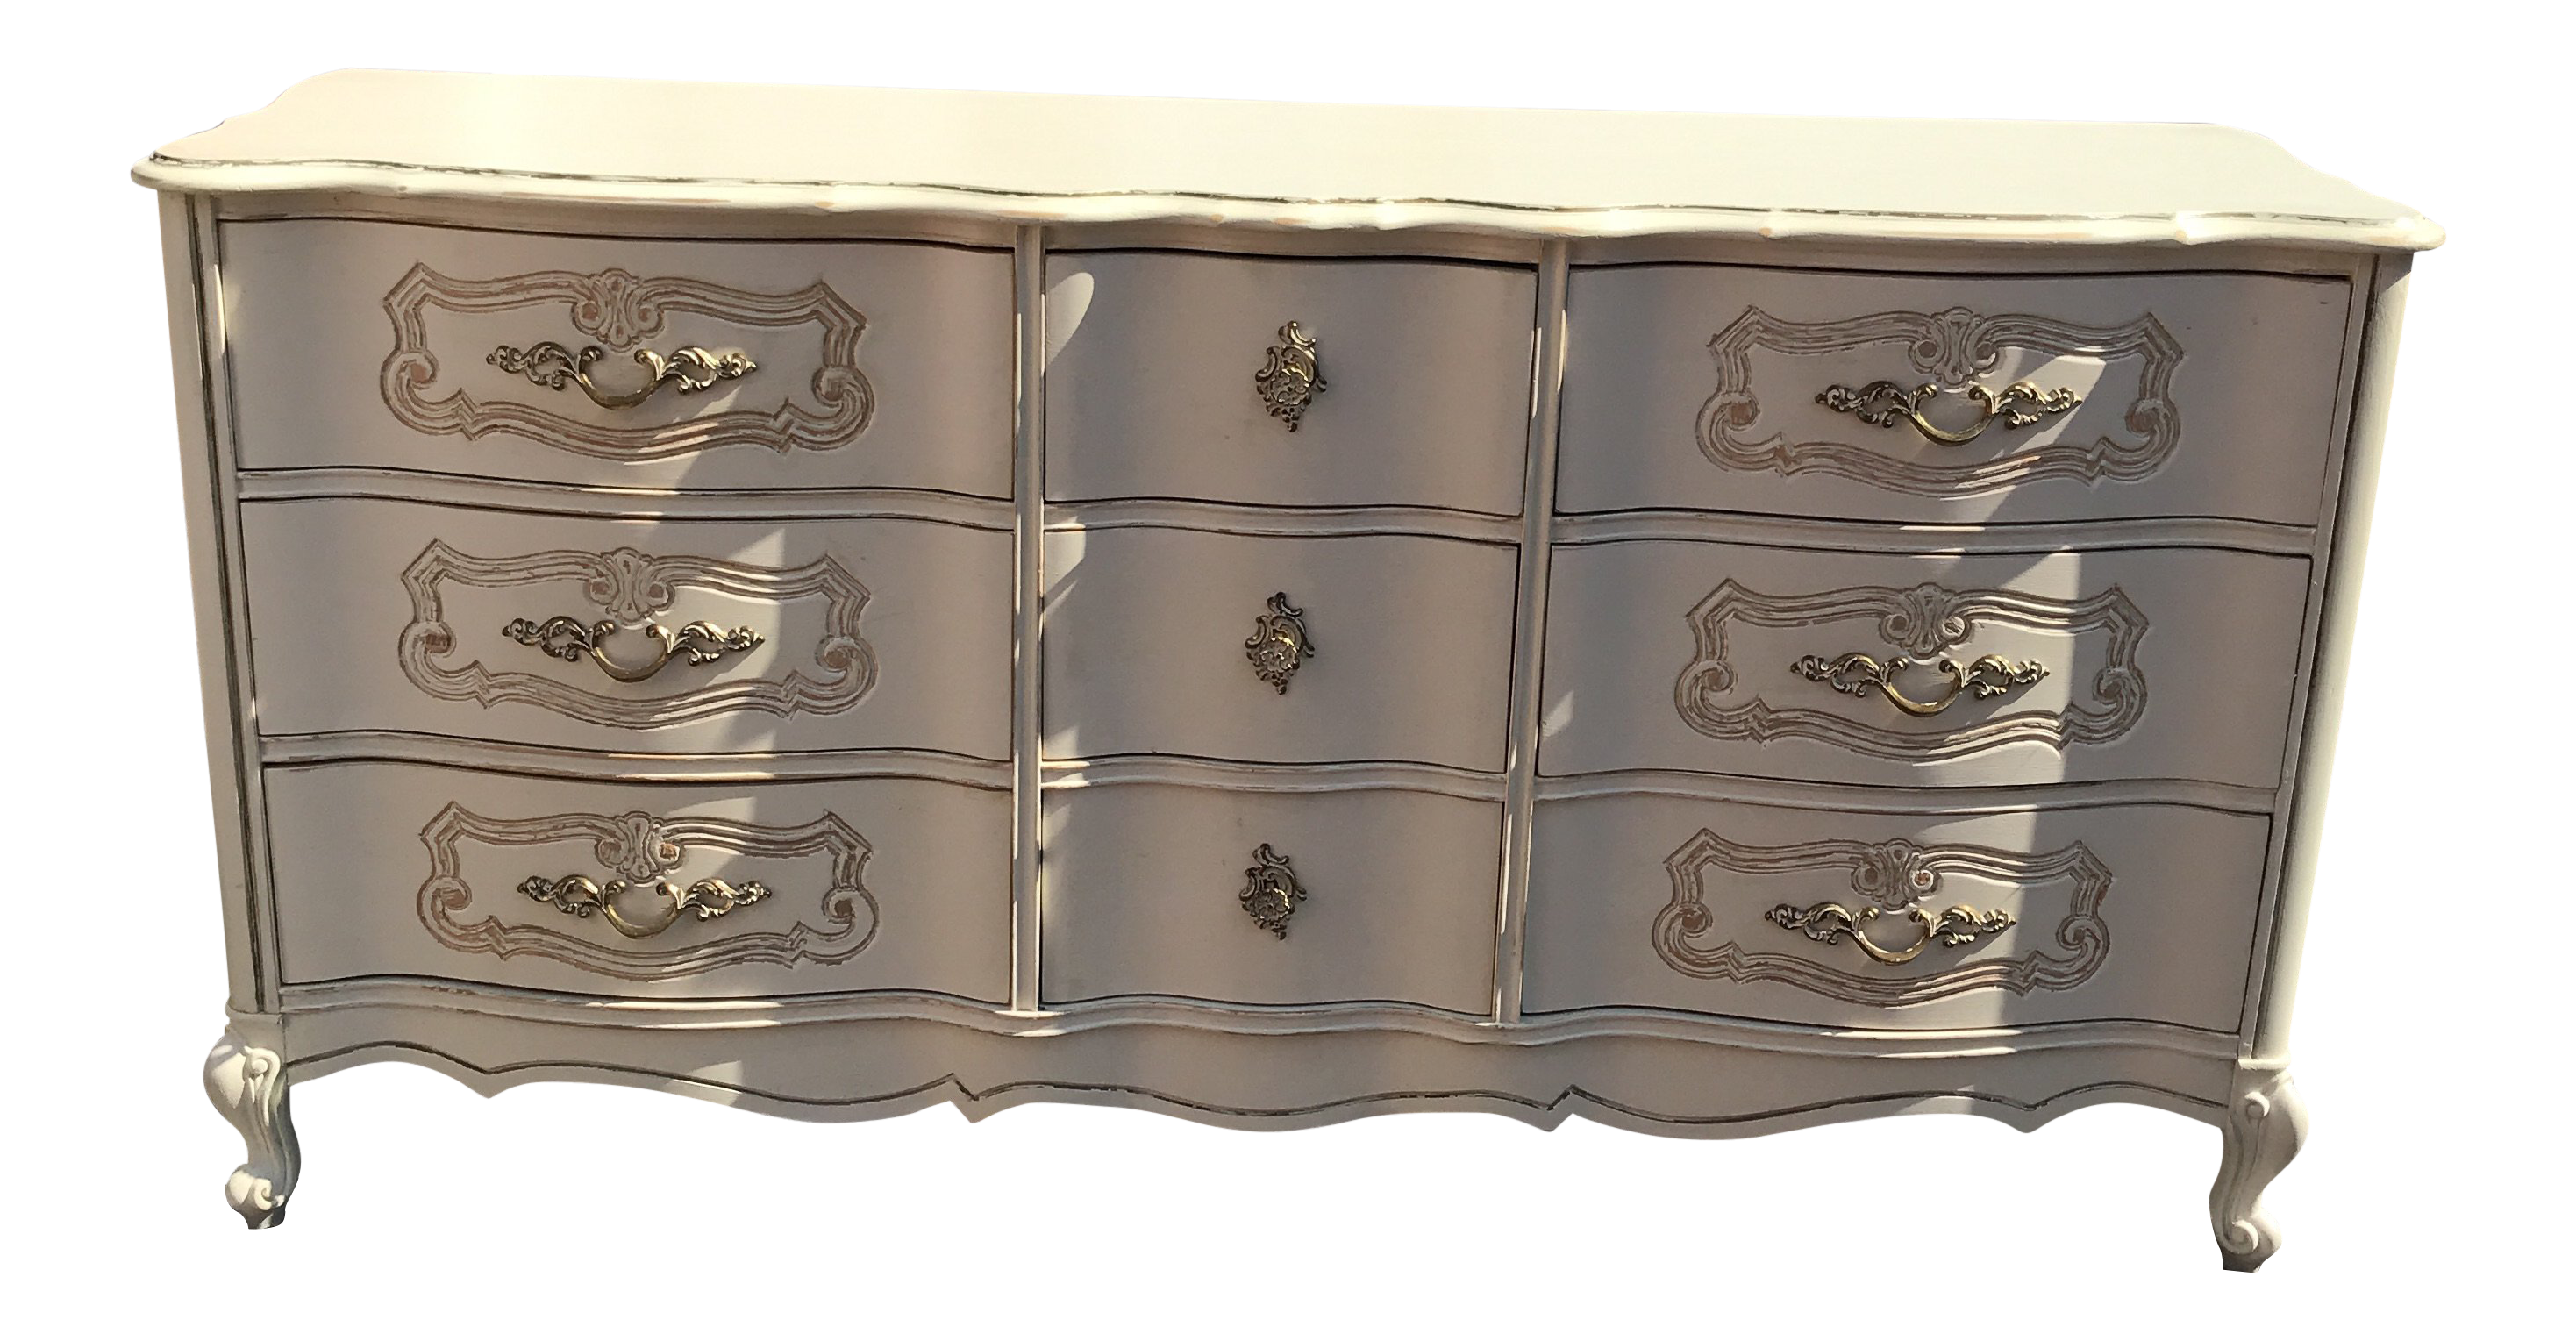 1970s French Provincial Bassett Furniture White Chest Of Drawers